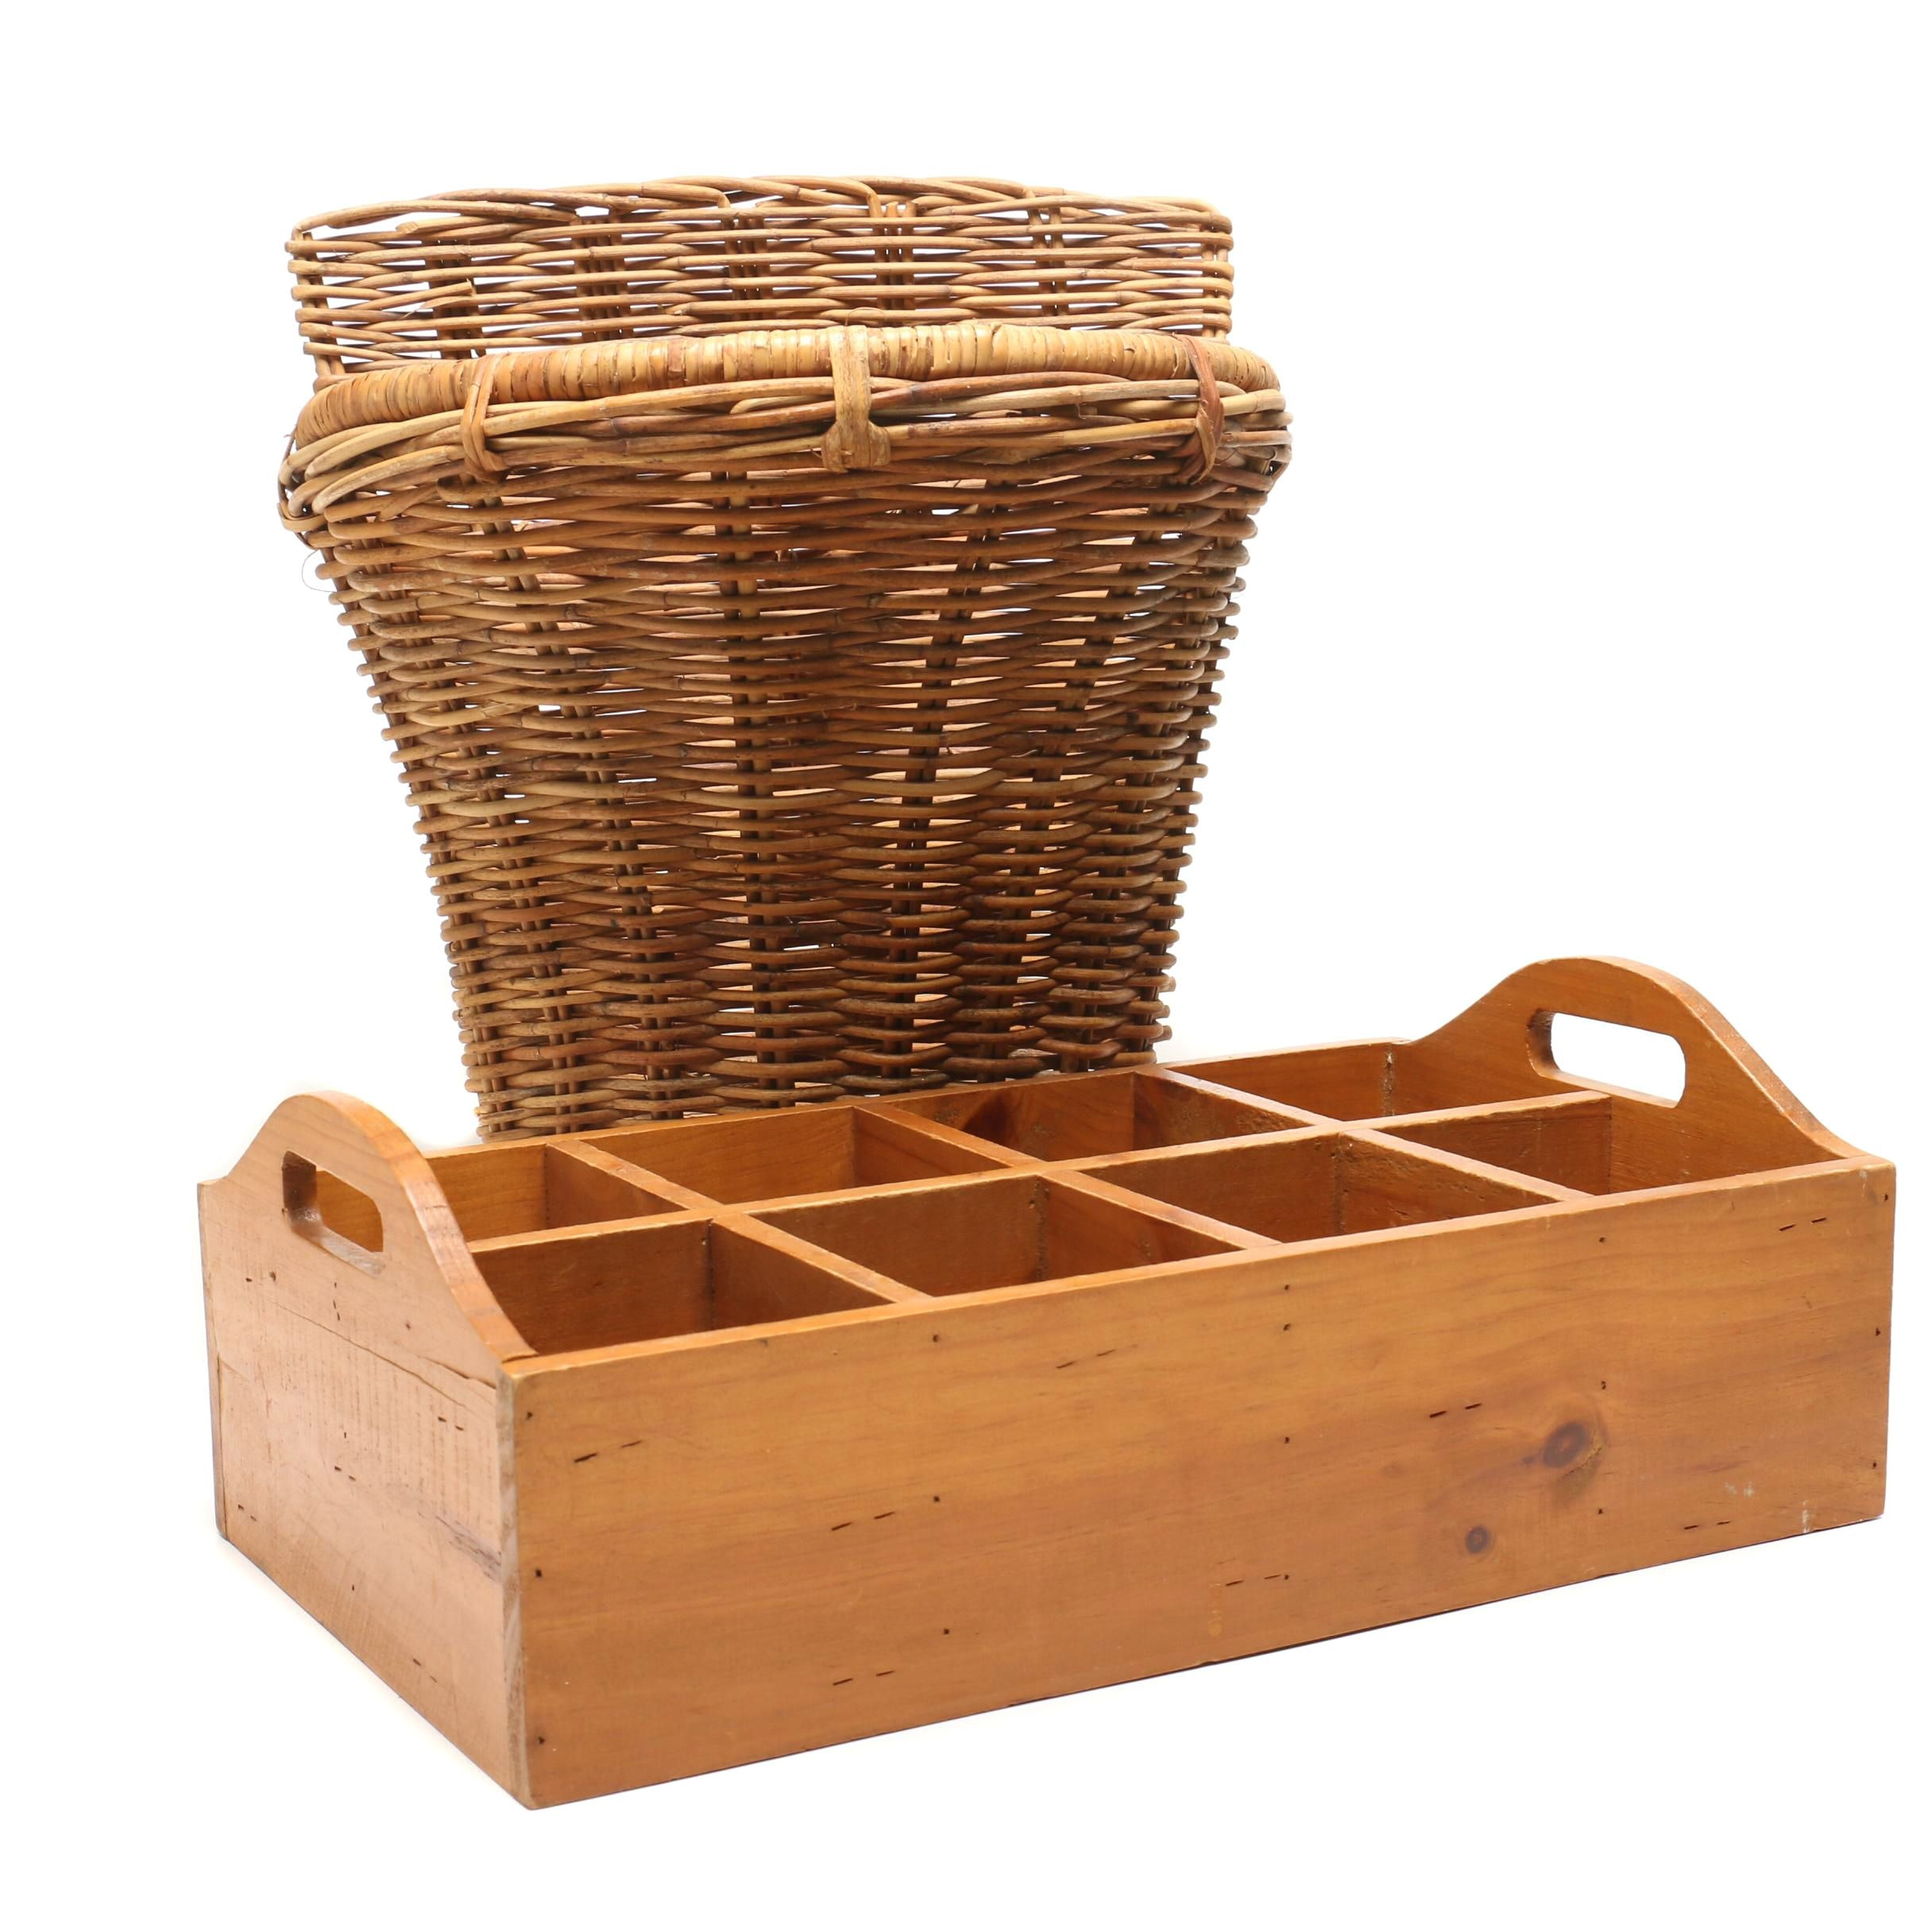 Wall Mount Decorative Basket and Wooden Divided Tray with Handles